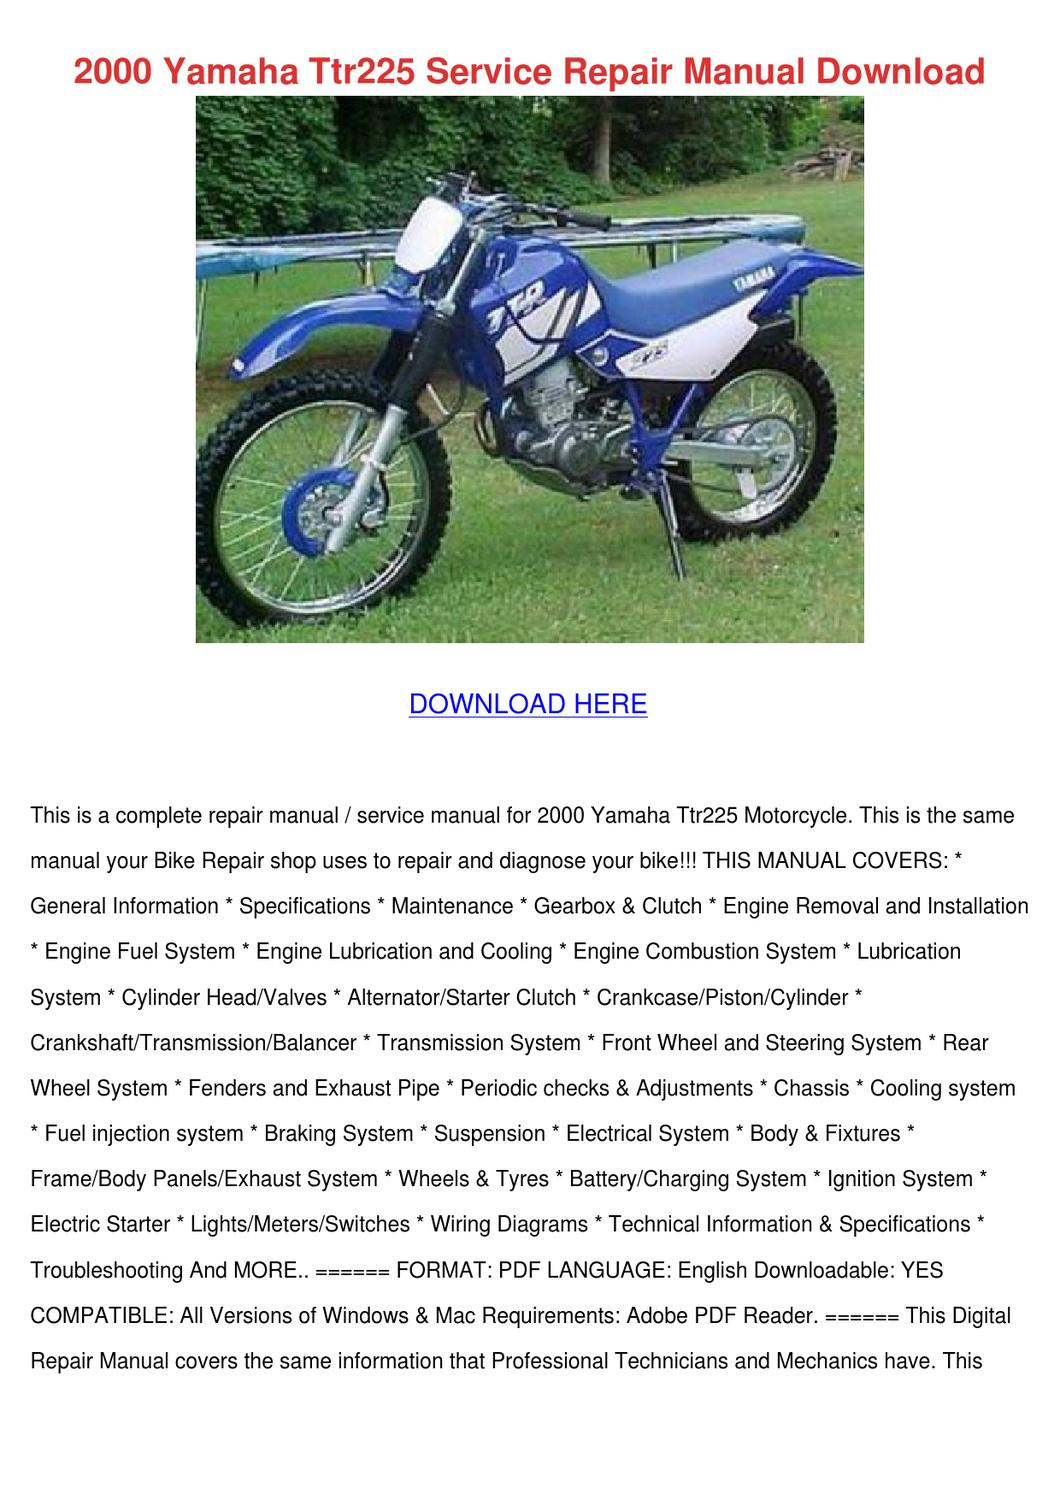 2000 Yamaha Ttr225 Service Repair Manual Down By Elinore Modafferi Issuu